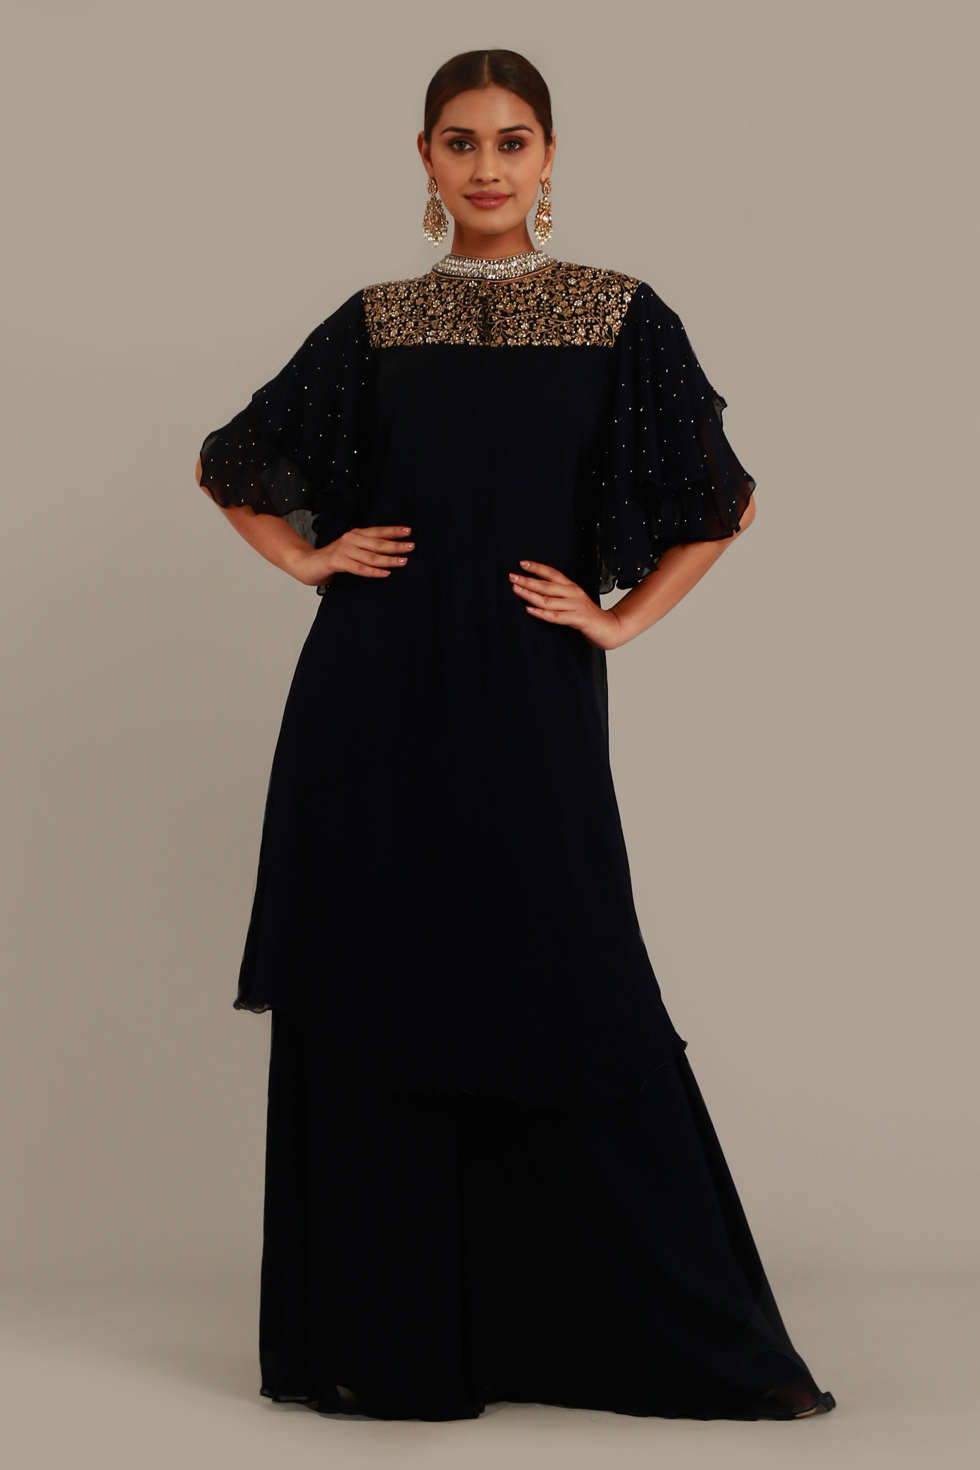 Raven Black Long Top with Palazzo Pants